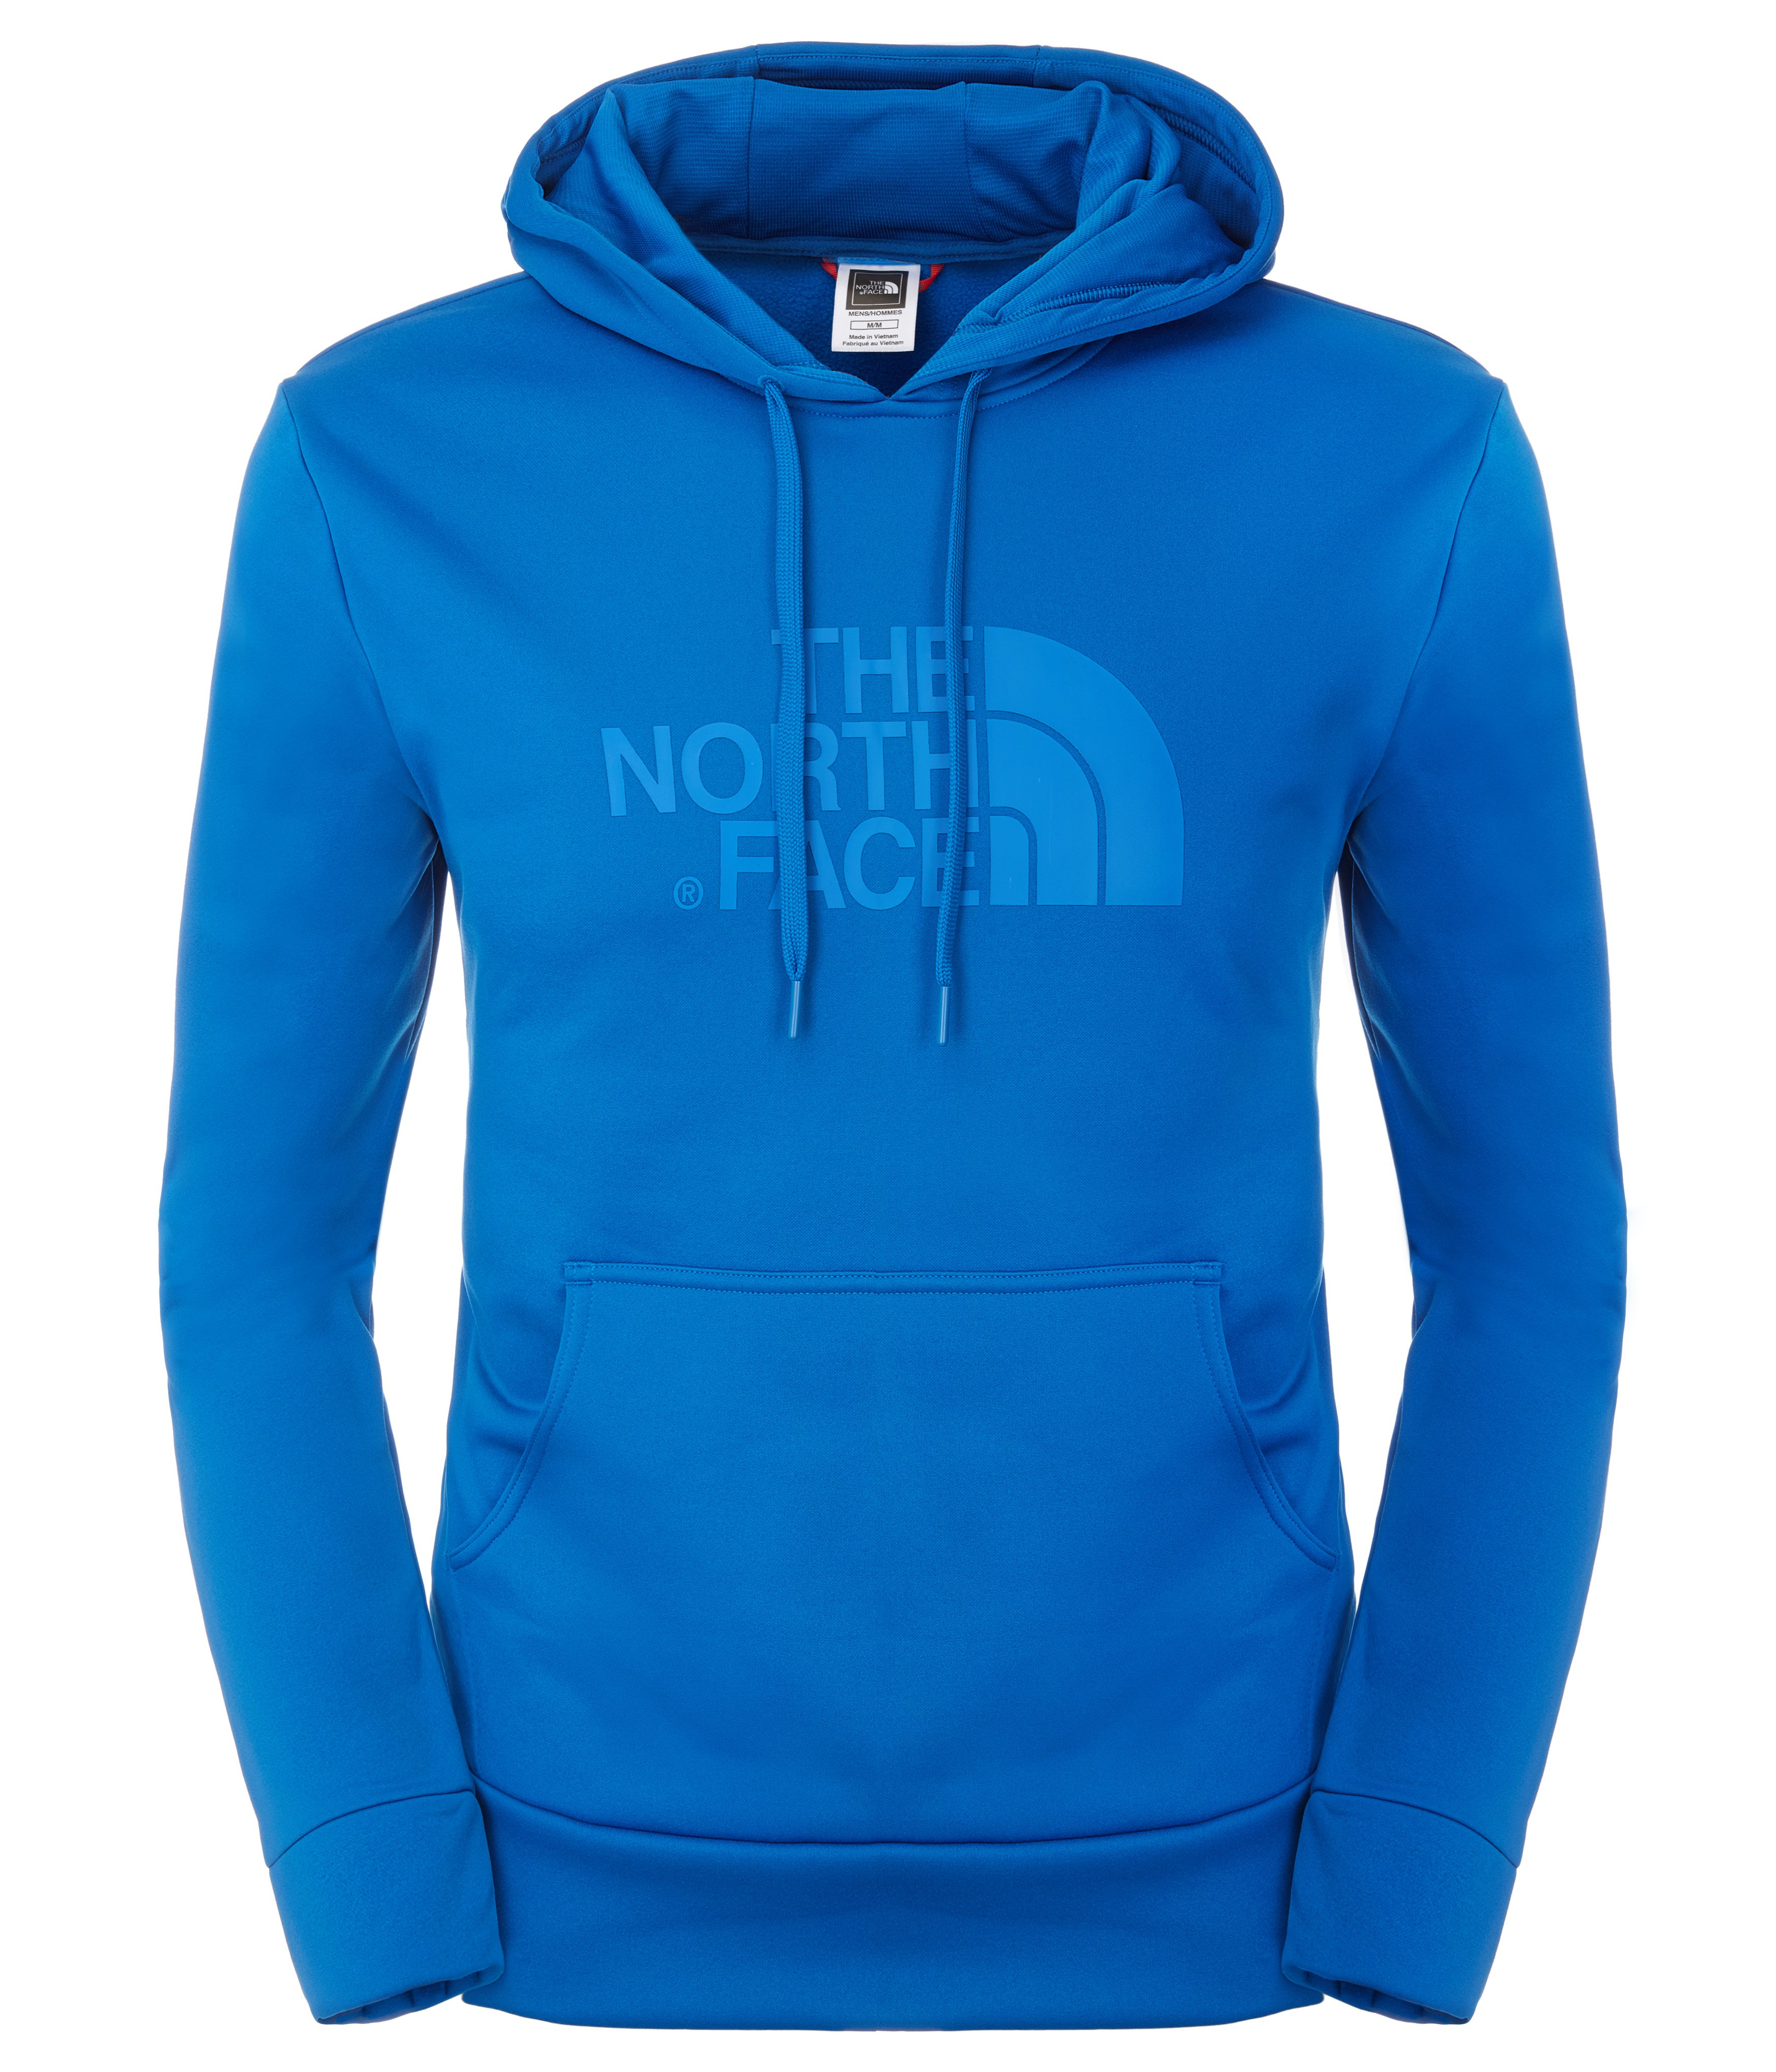 THE NORTH FACE m Sergent Hoodie, modrá